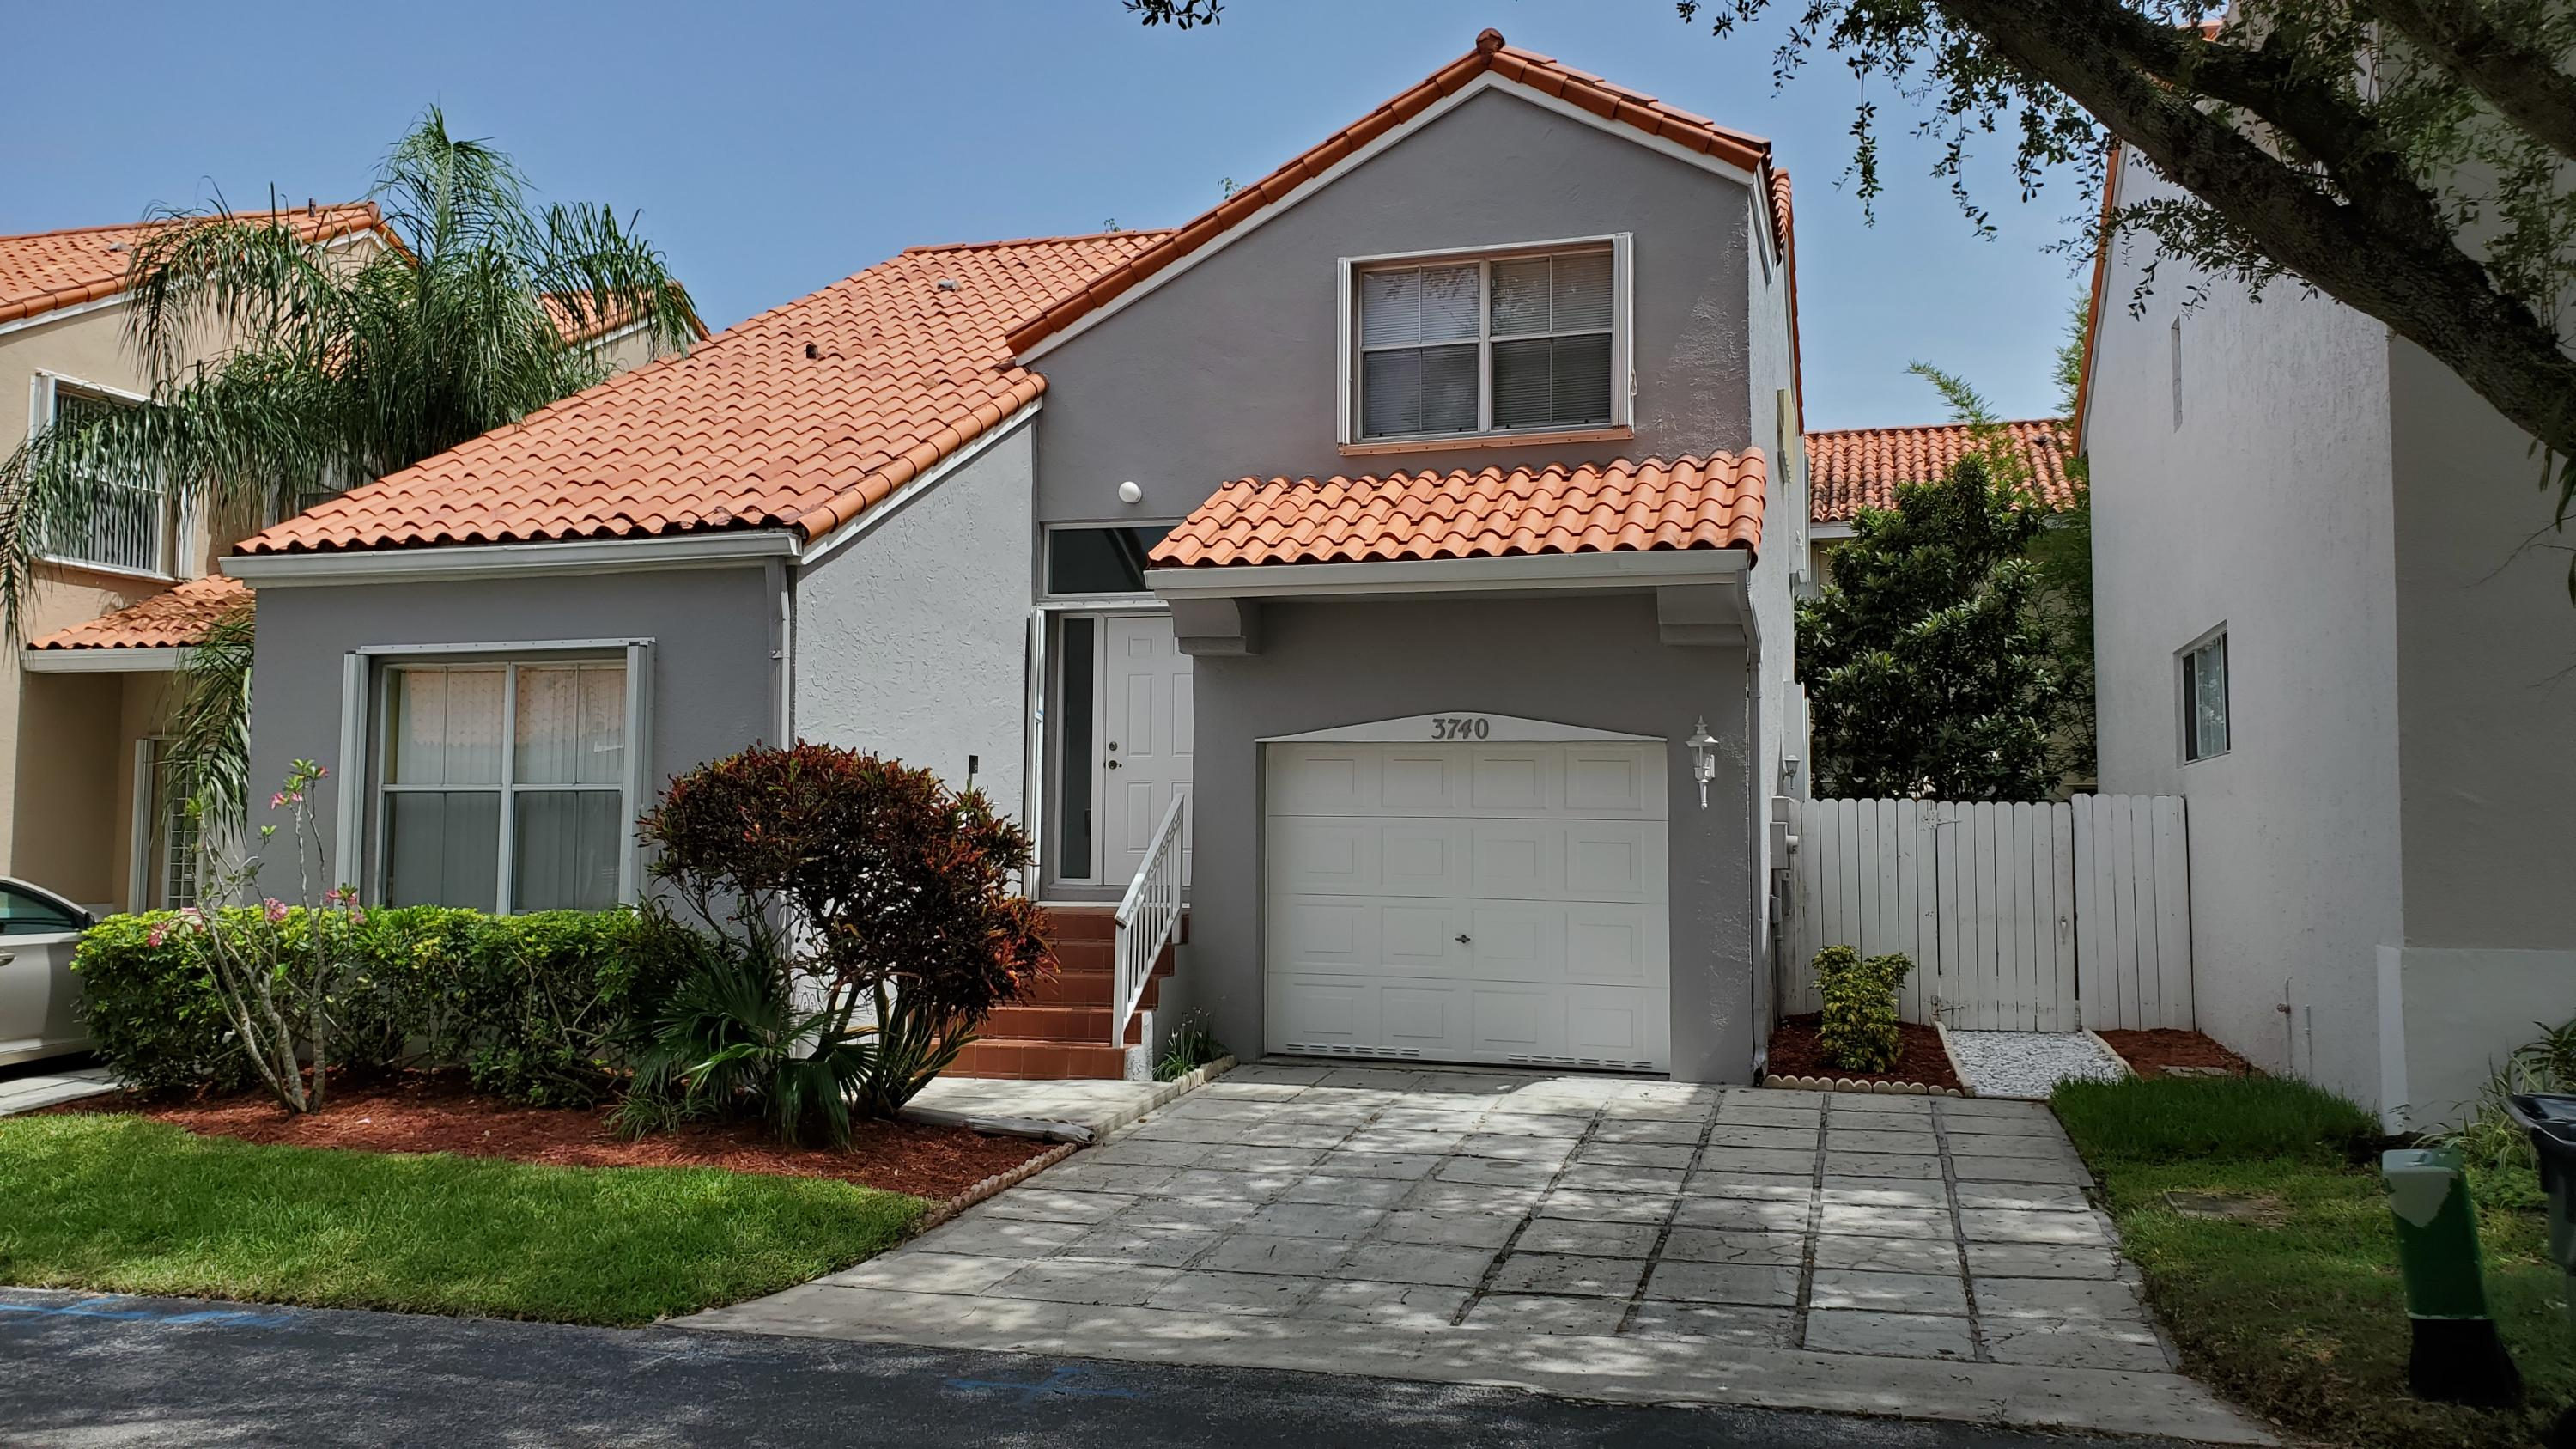 Home for sale in L'etoile Hollywood Florida